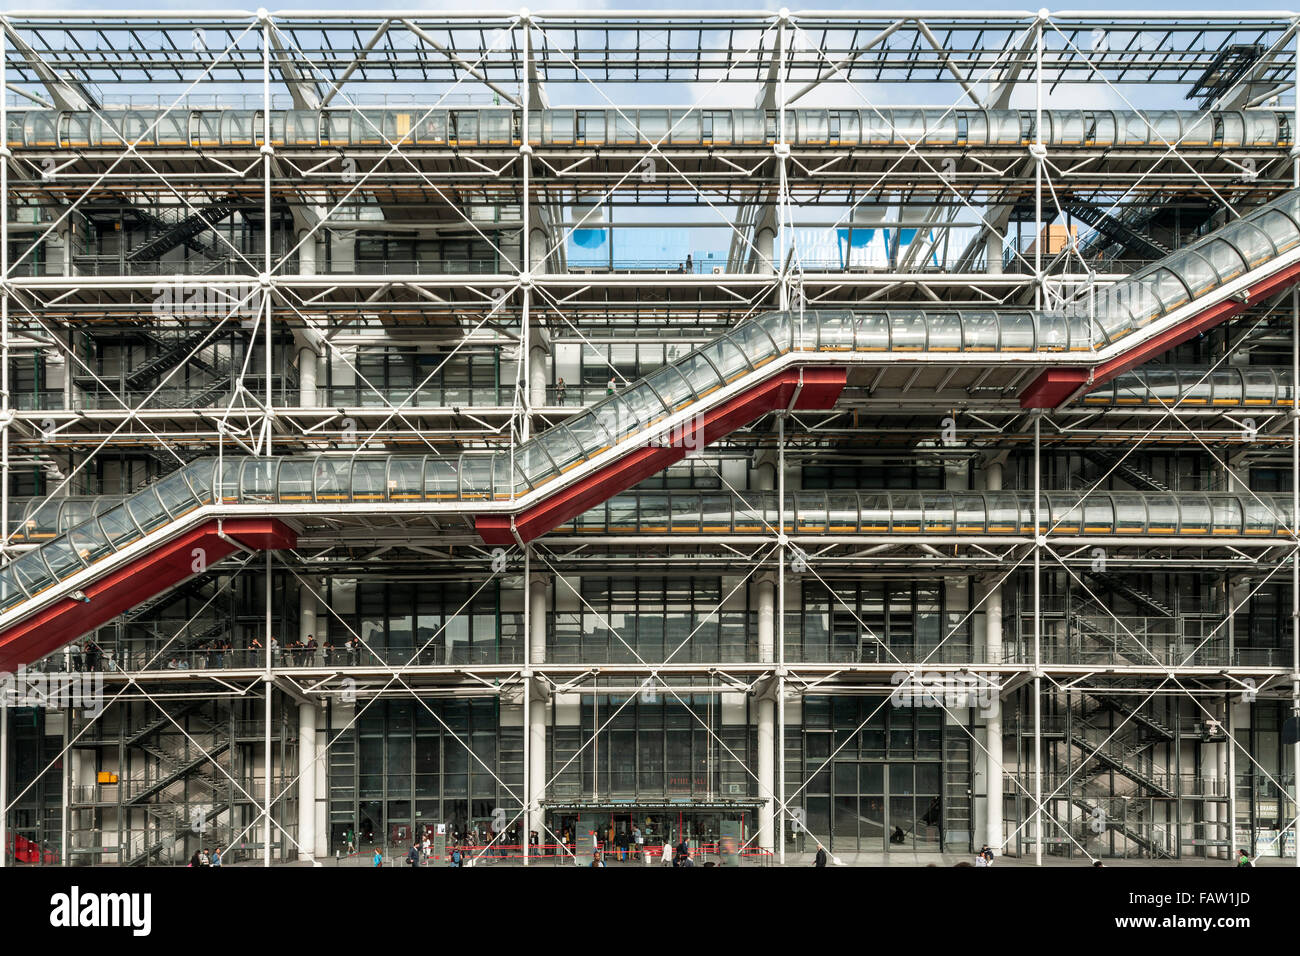 The Centre Georges Pompidou building in central Paris. - Stock Image